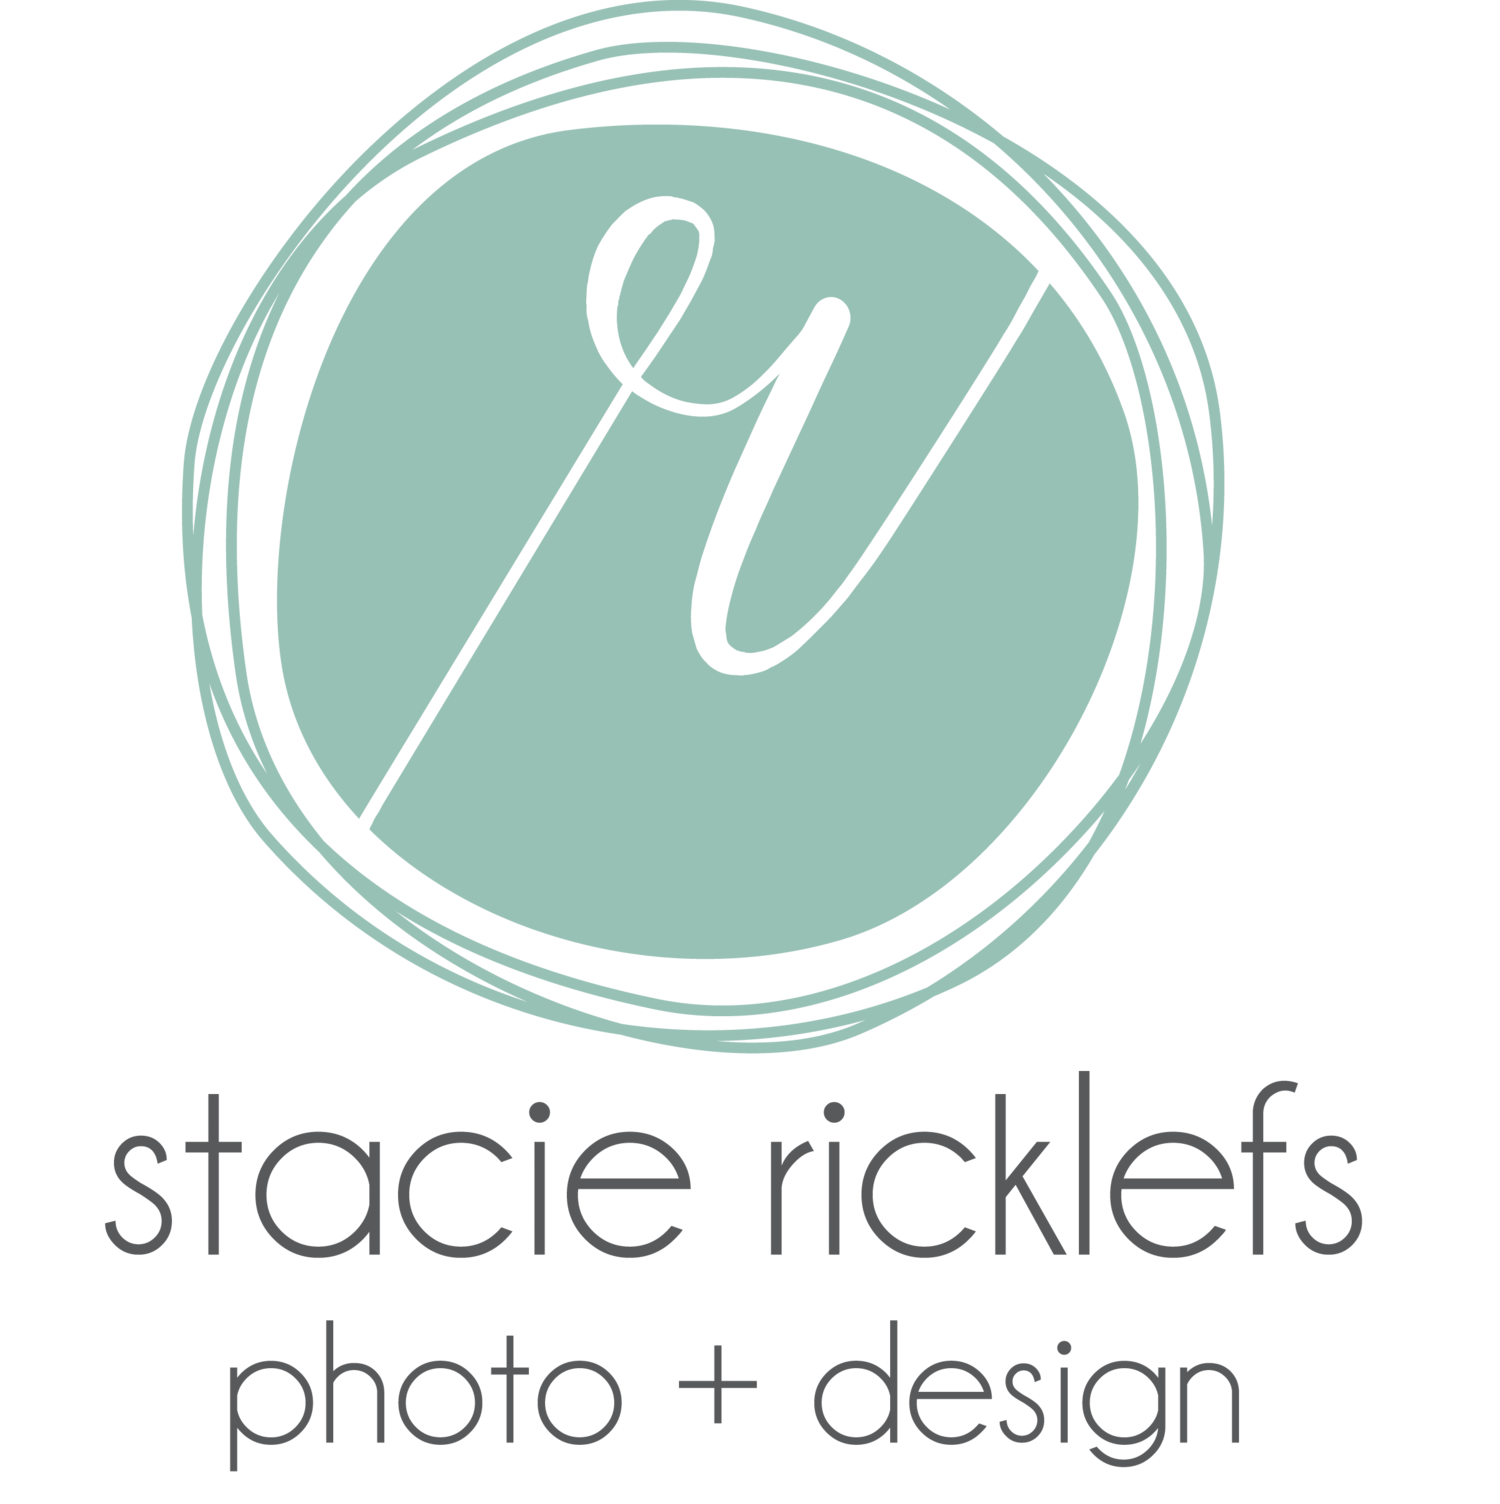 Iowa Wedding Photographer | Stacie Ricklefs Photo + Design